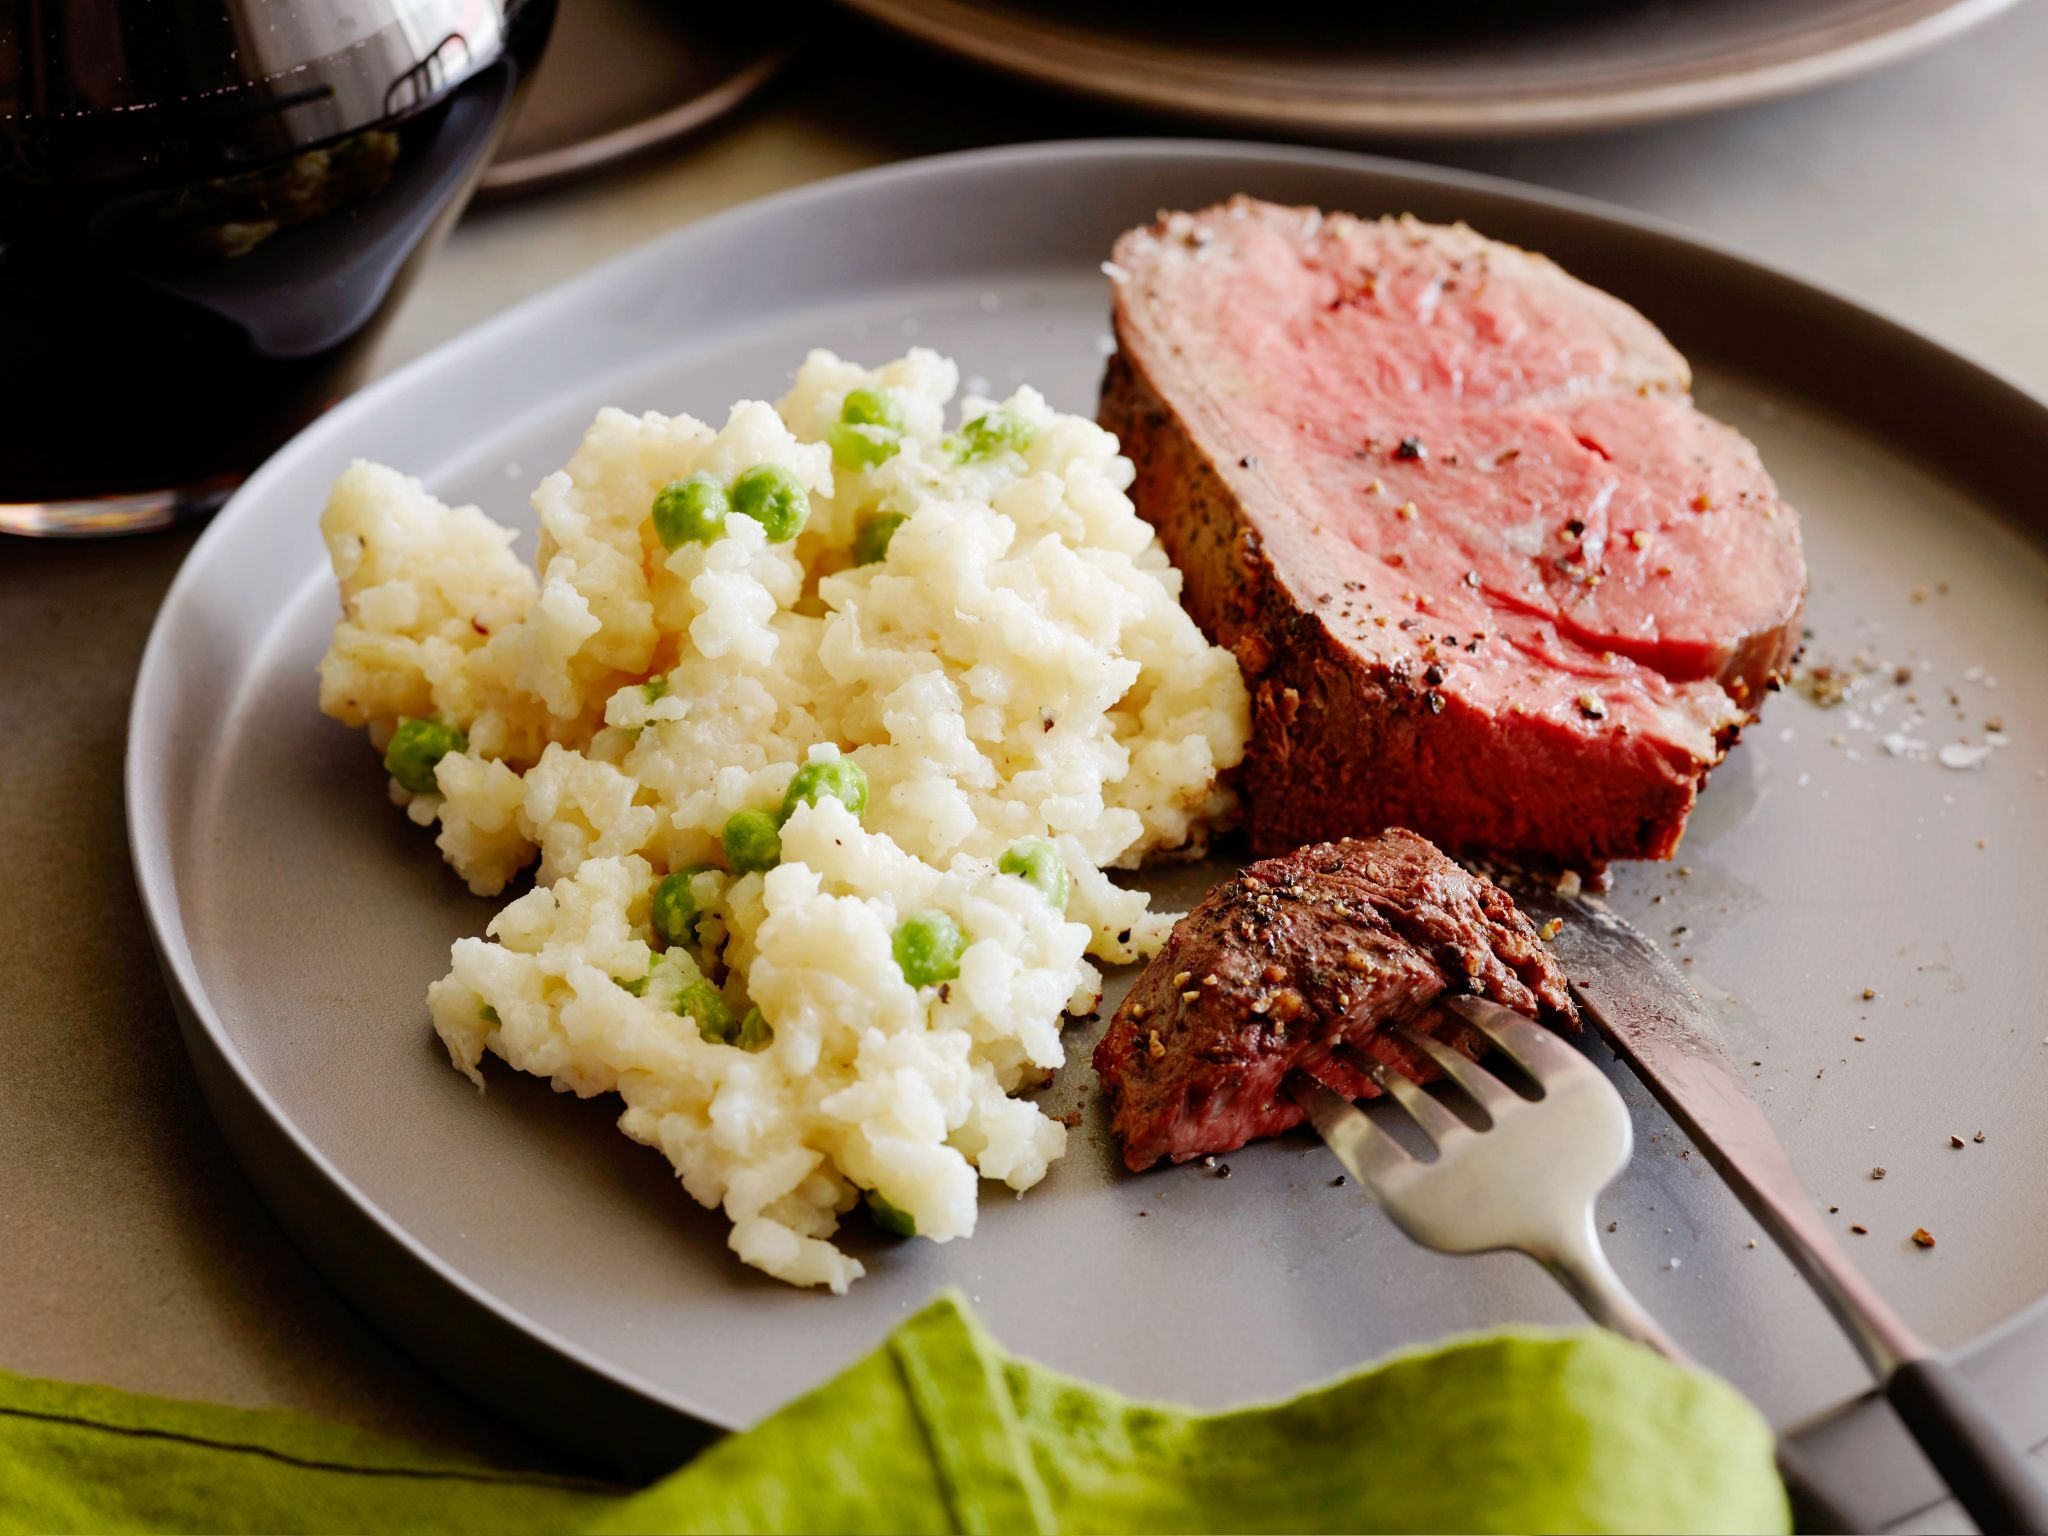 Quick and easy holiday recipes ina garten beef recipes and garten filet of beef recipe ina garten food network christmas dinner forumfinder Image collections